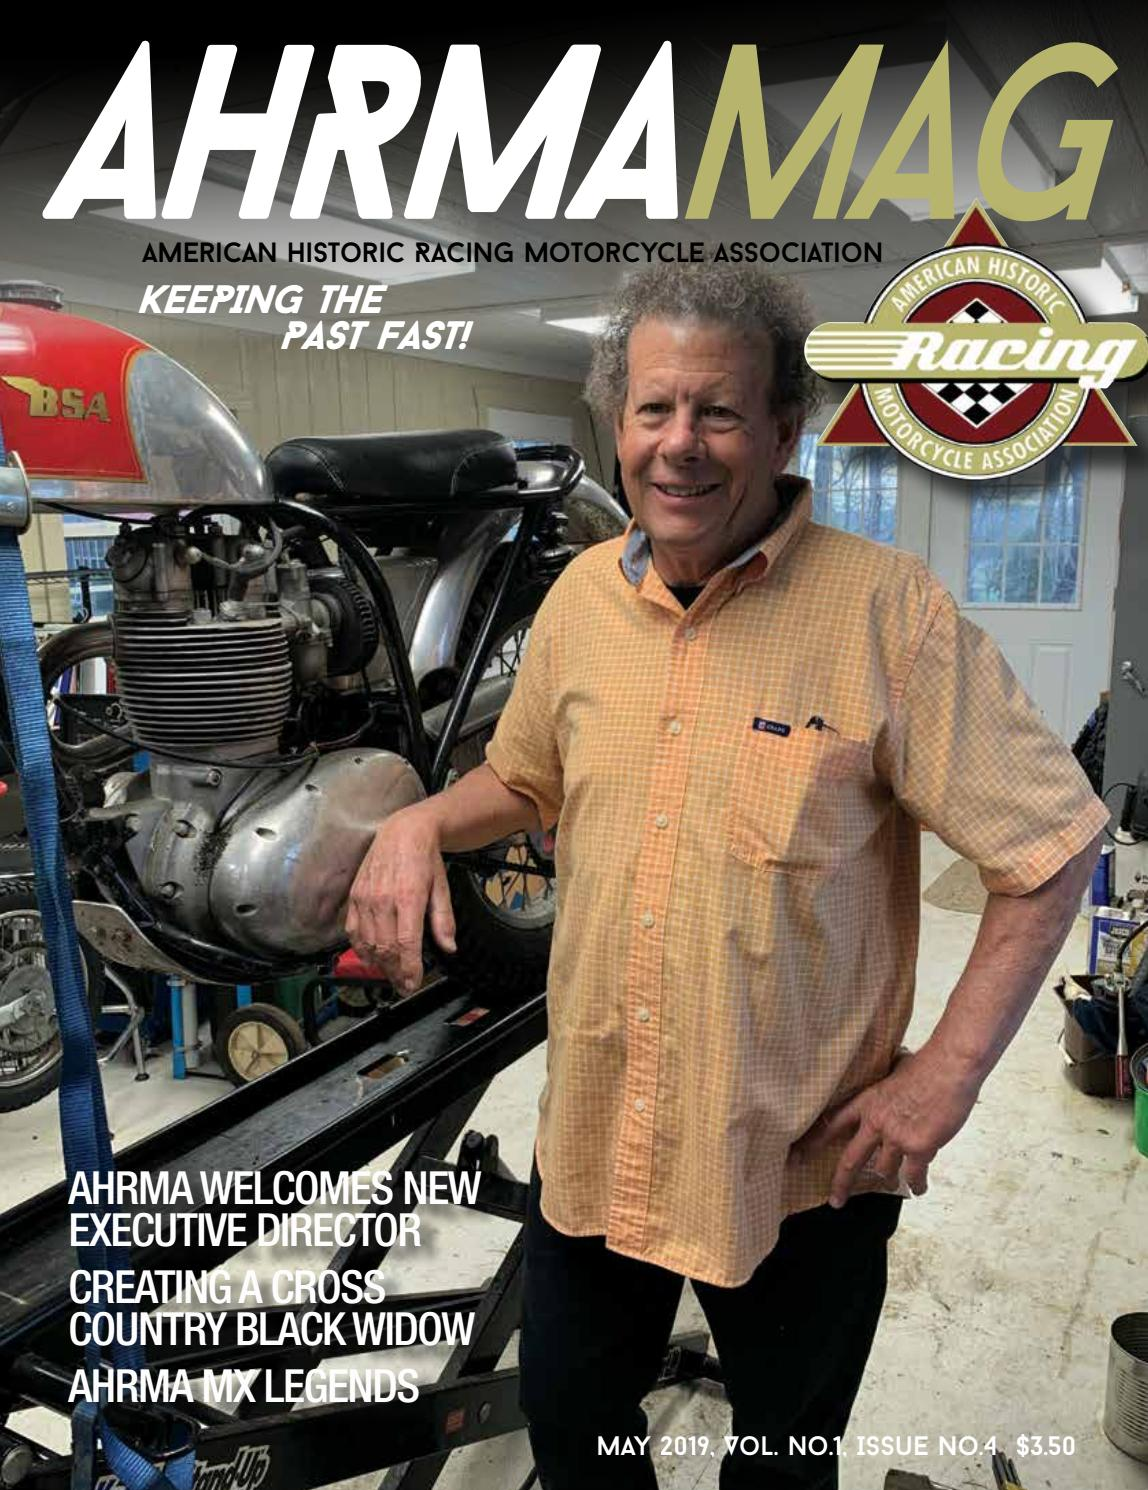 AHRMA Mag, May 2019 Vol No 1 Issue No 4 by ahrma - issuu